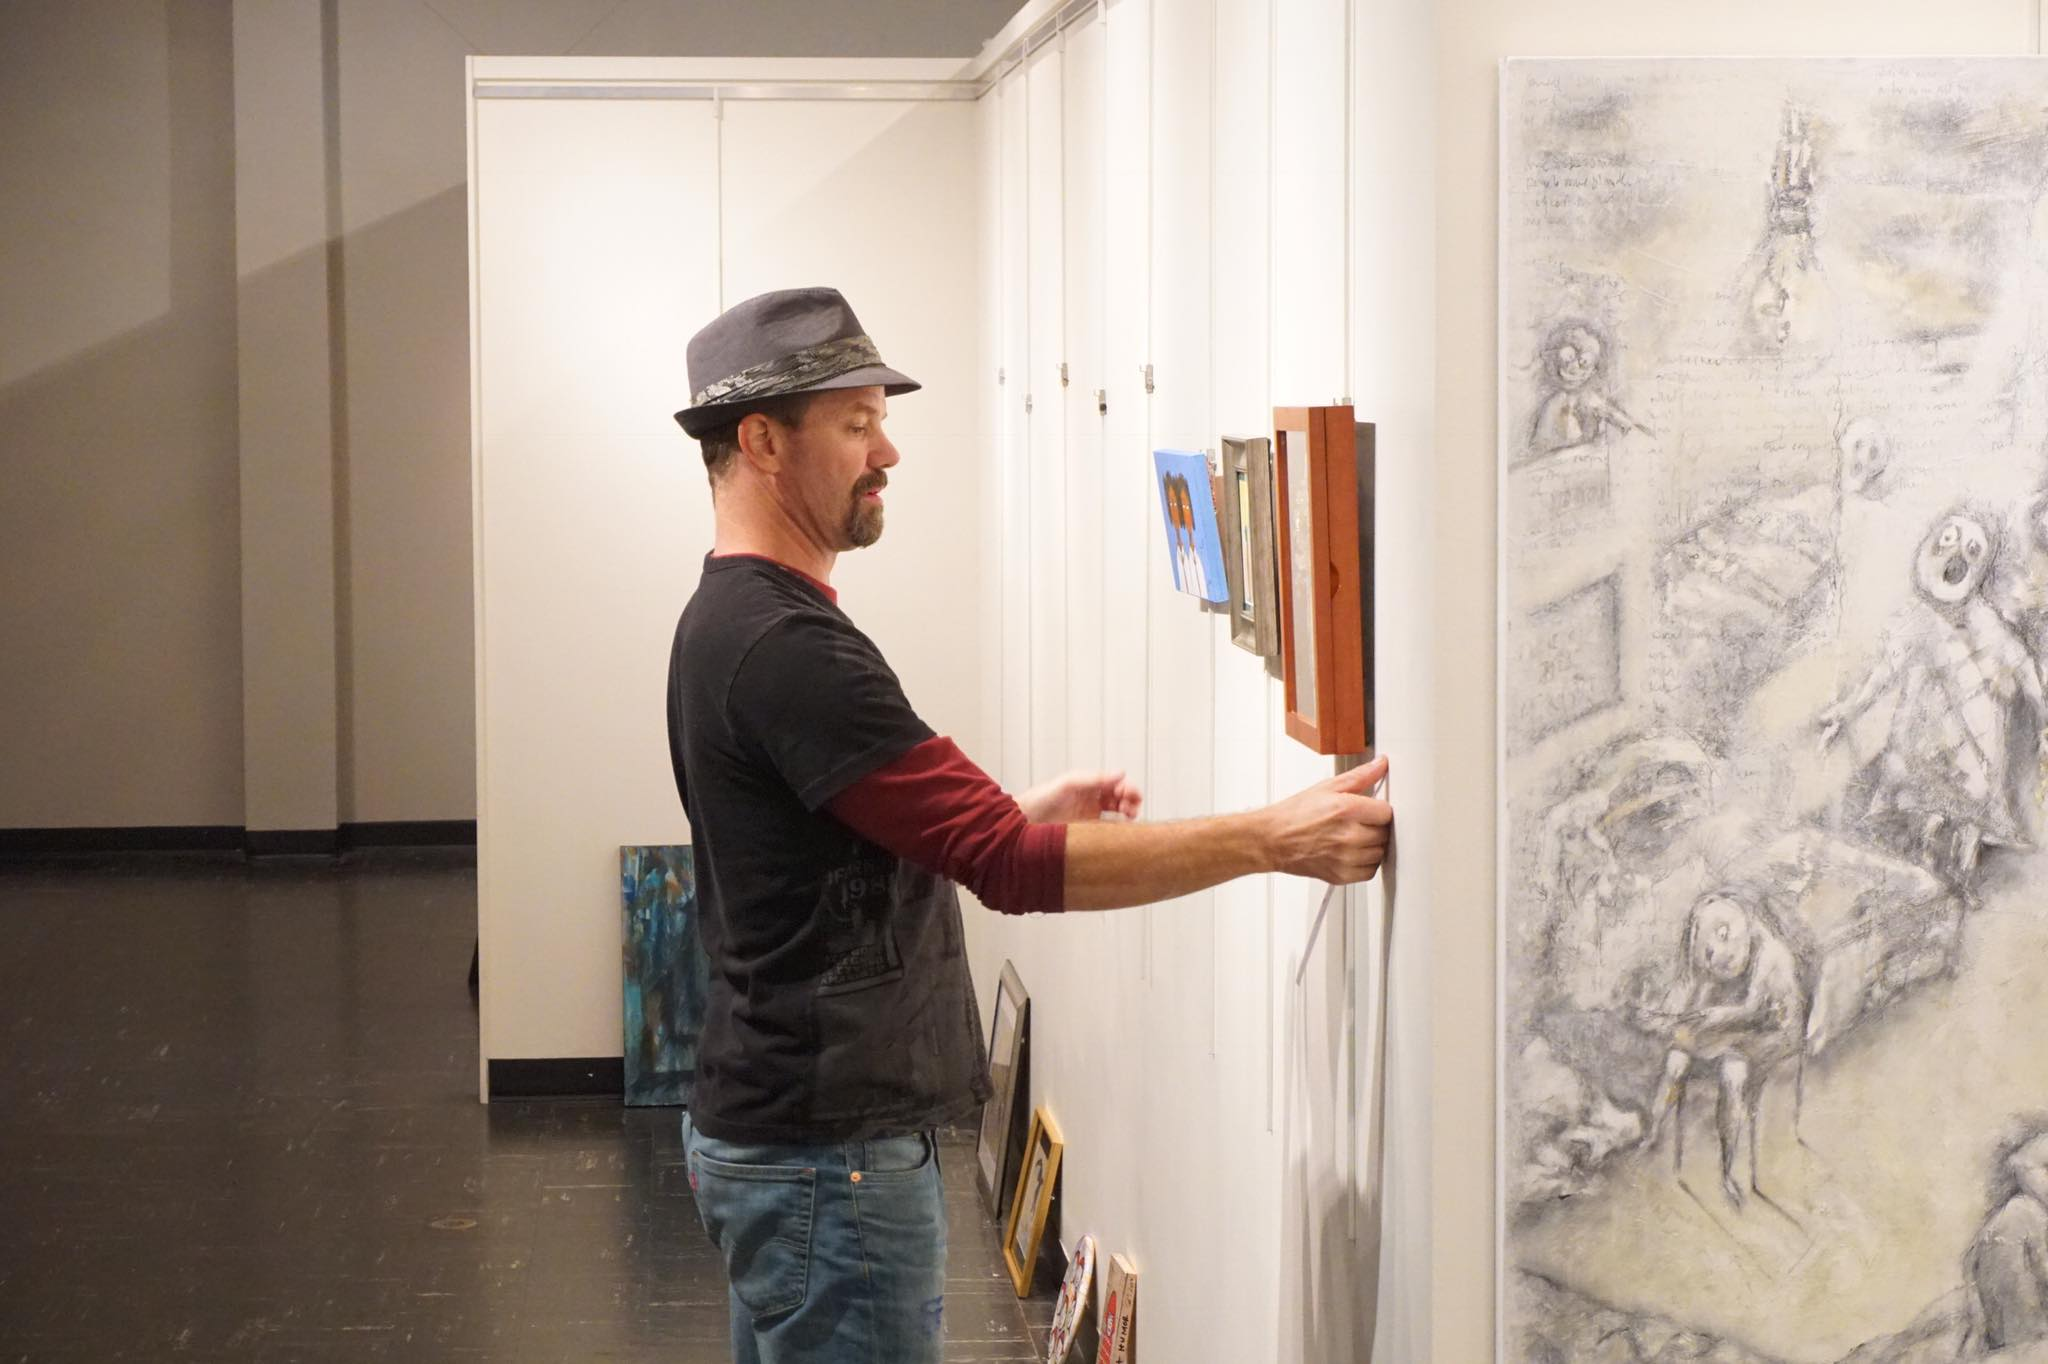 A/NT Gallery board member Ron Jones curates a new show